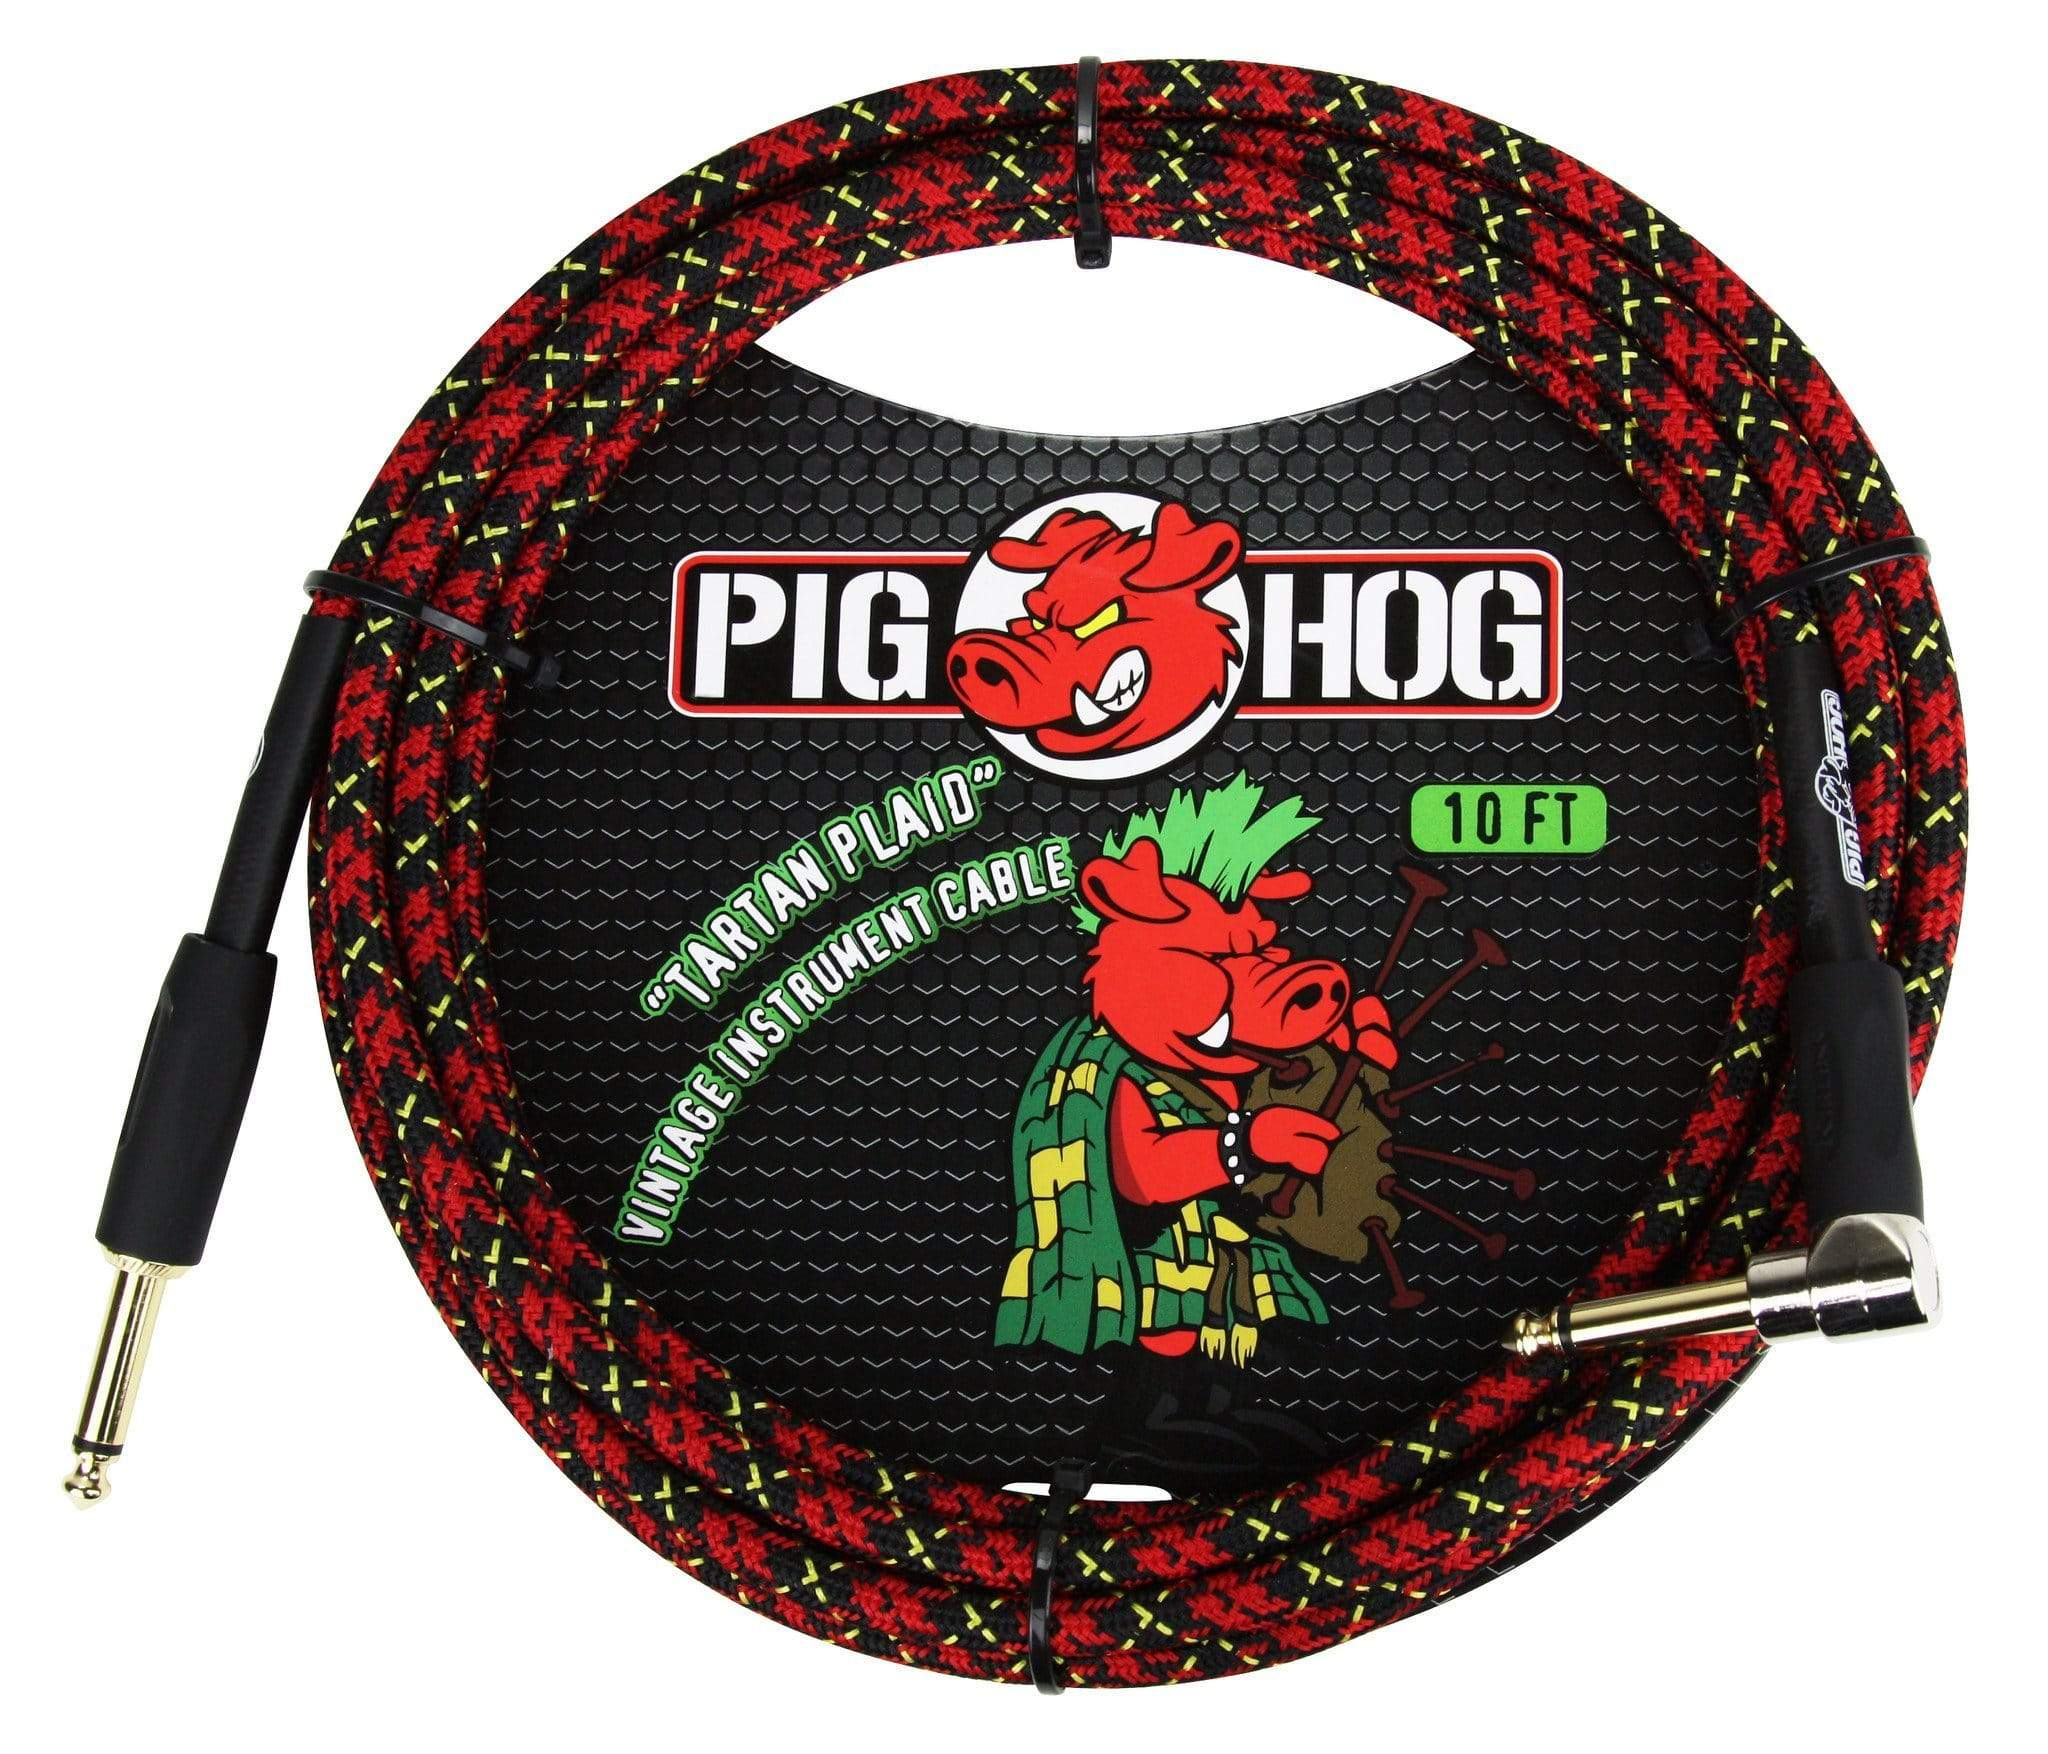 "PIG HOG GUITAR INSTRUMENT CABLES Pig Hog 1/4"" Tartan Plaid Tweed Guitar Instrument Cable Cord 20ft Right-Angle"